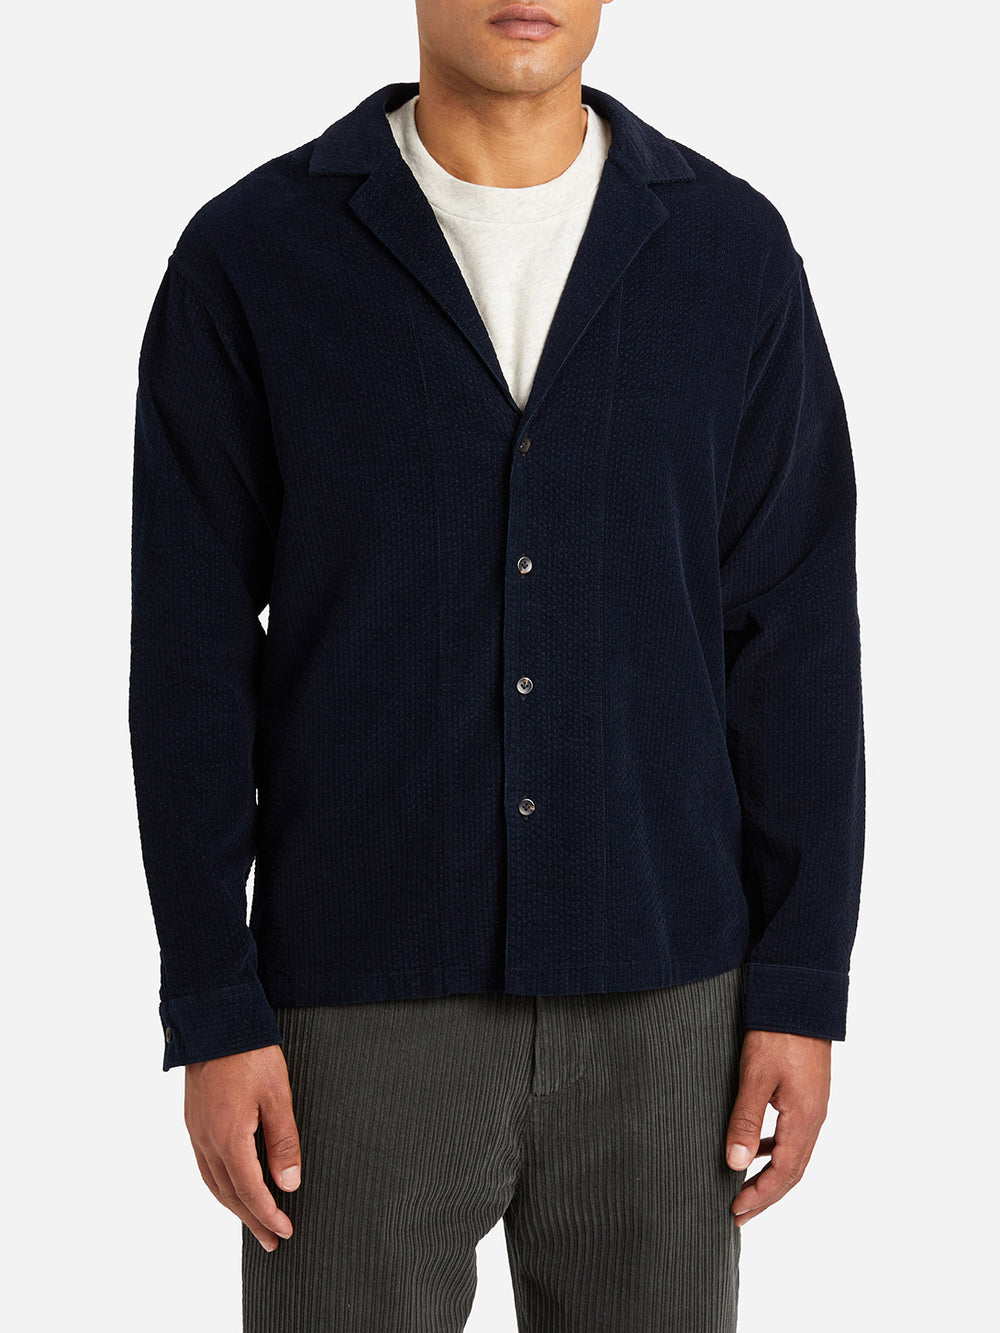 NAVY woven shirts for men connor woven shirt ons clothing